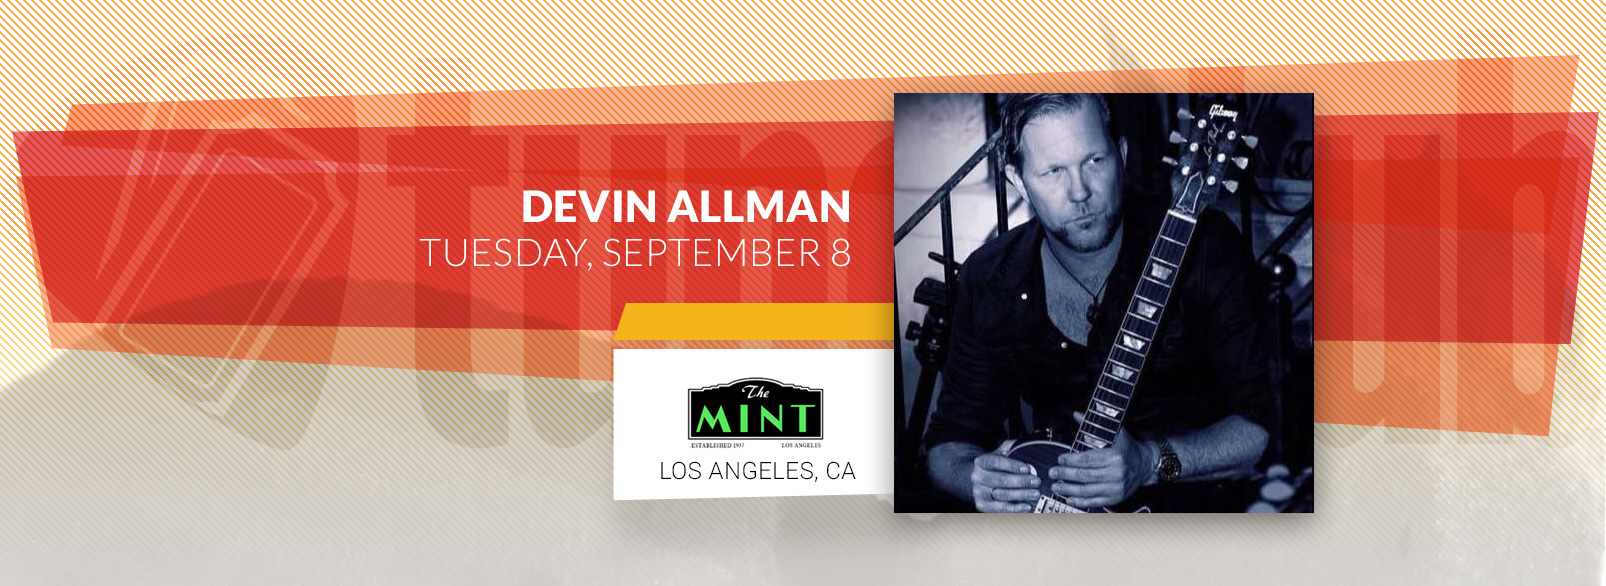 Devon Allman @ The Mint